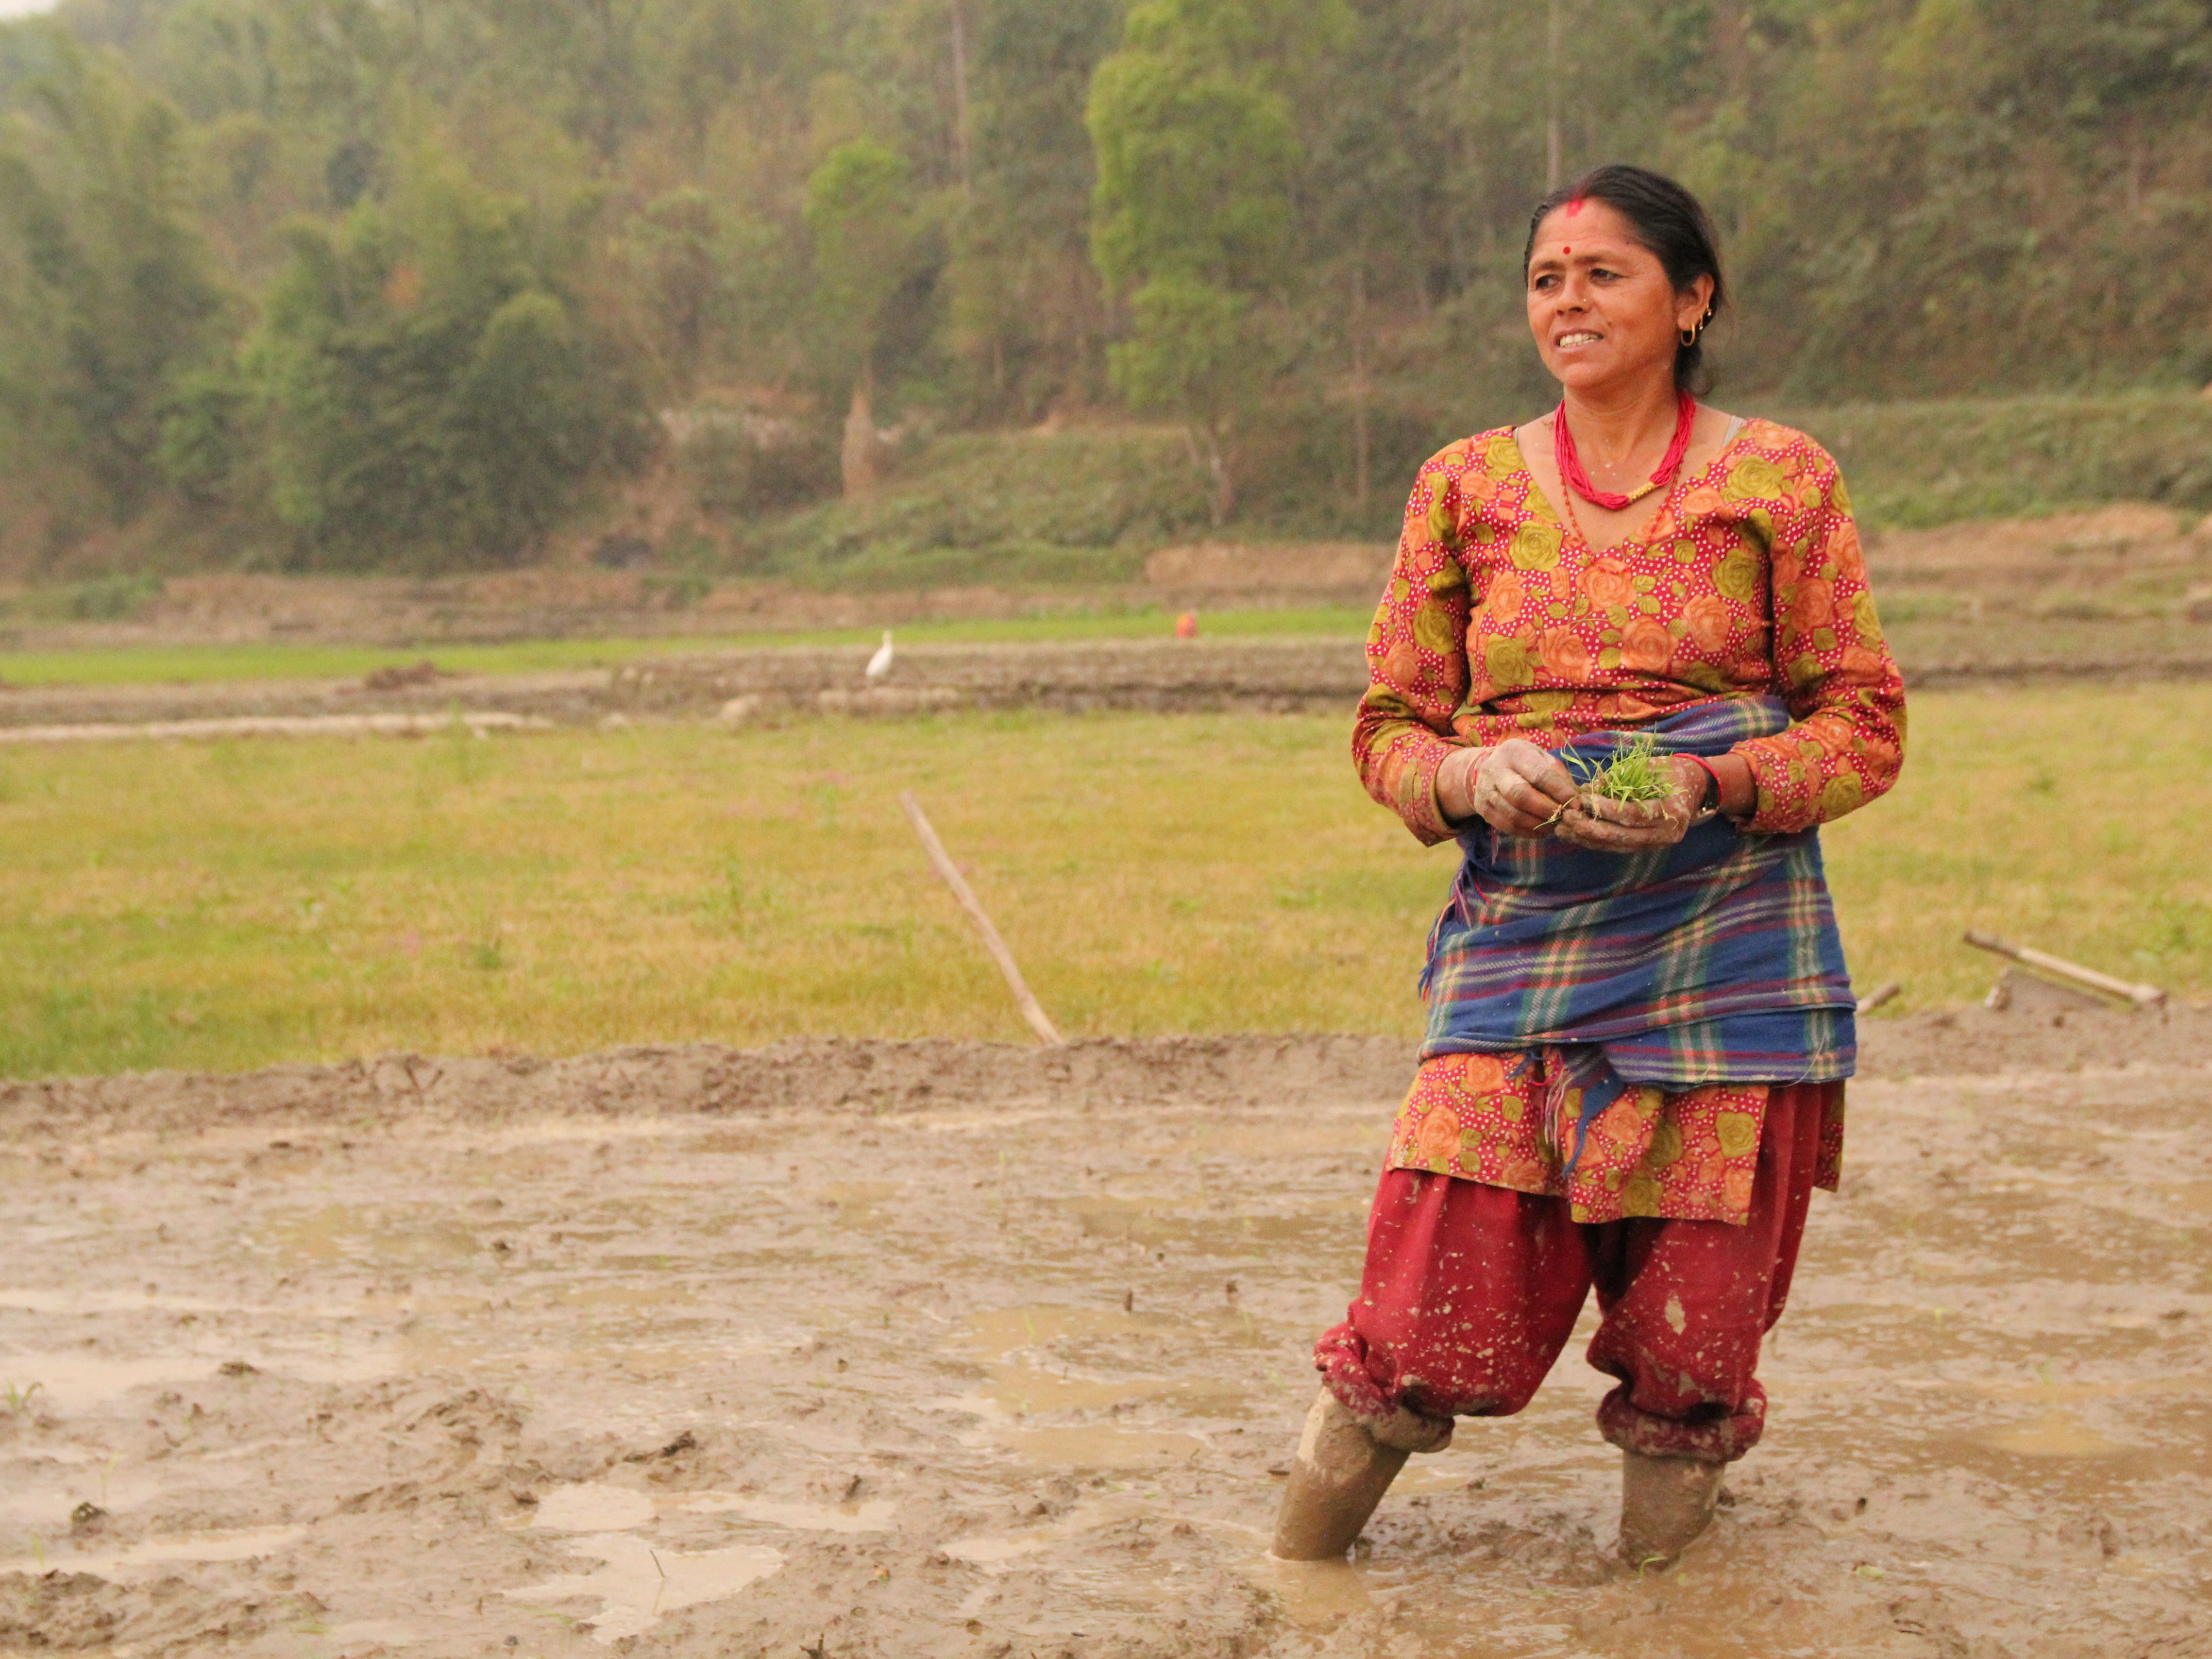 Apsara Bharati is watching over her field in Nepal, where she and her neighbors are using the system of rice intensification to plant seedlings. (Danielle Preiss/NPR)